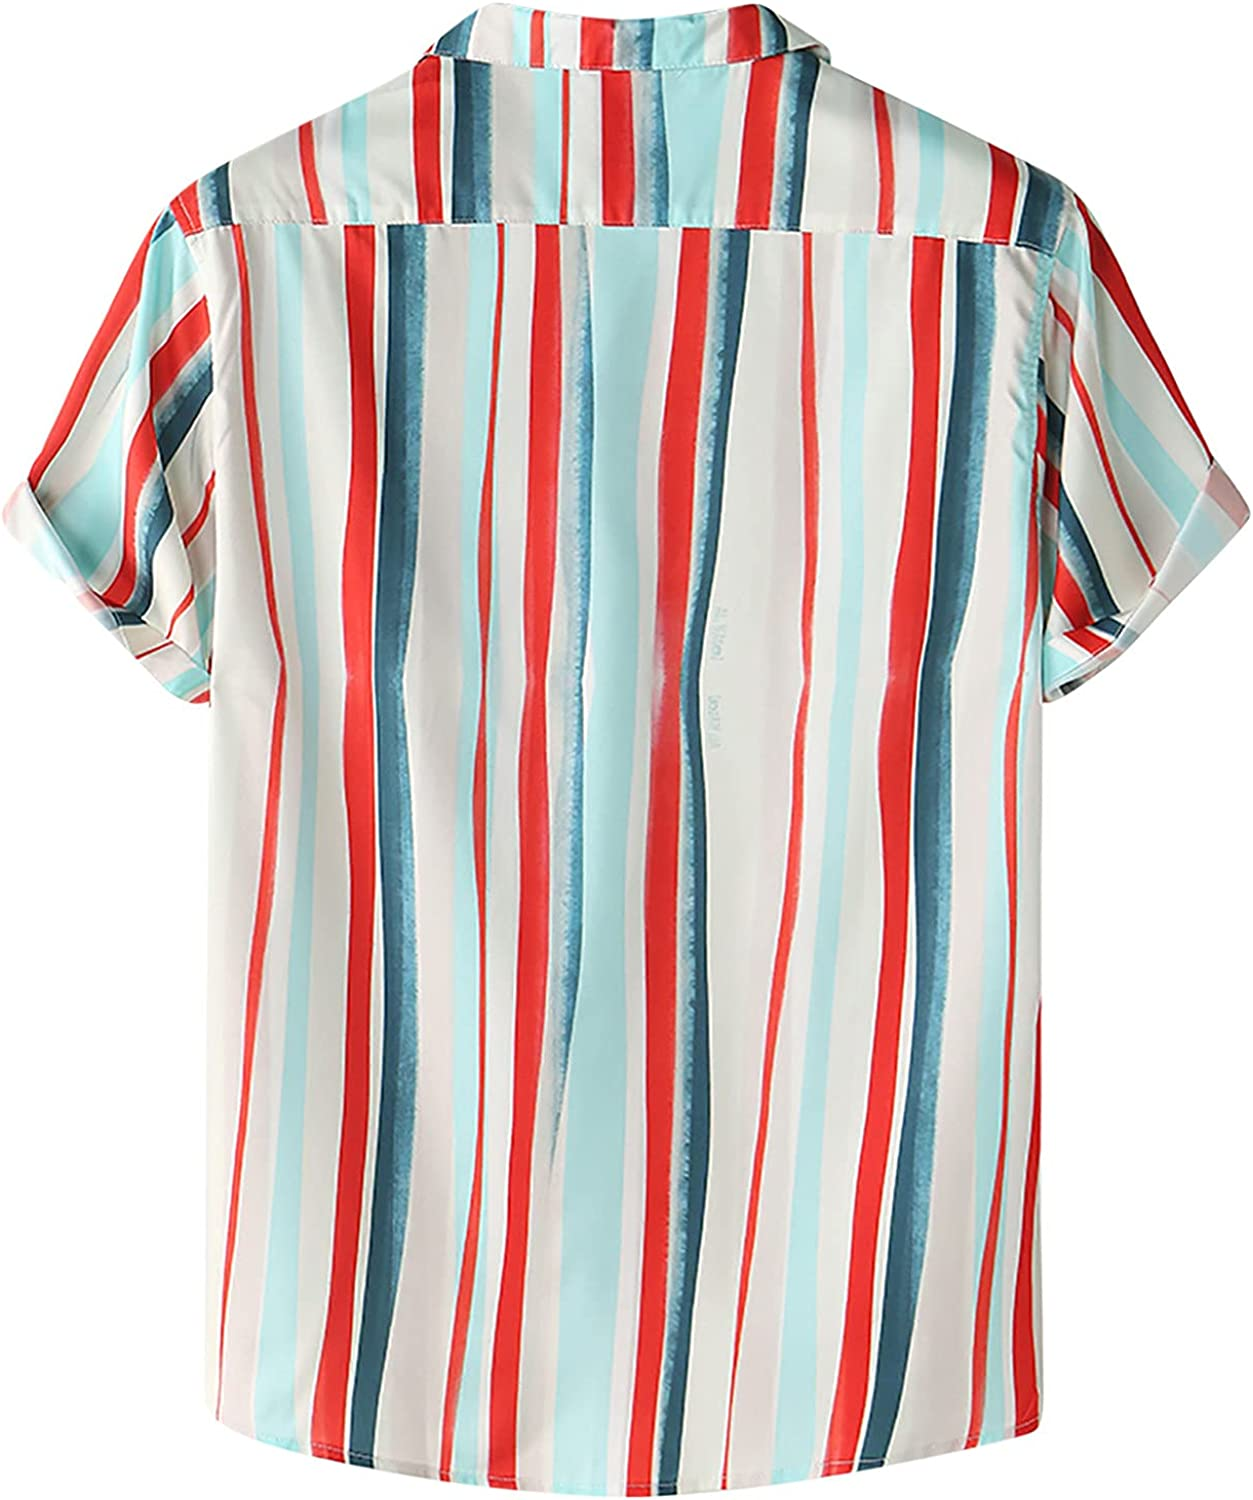 Mens Button Shirts OFFicial site Breathable Phoenix Mall Striped Loo Print Collar Turn Down